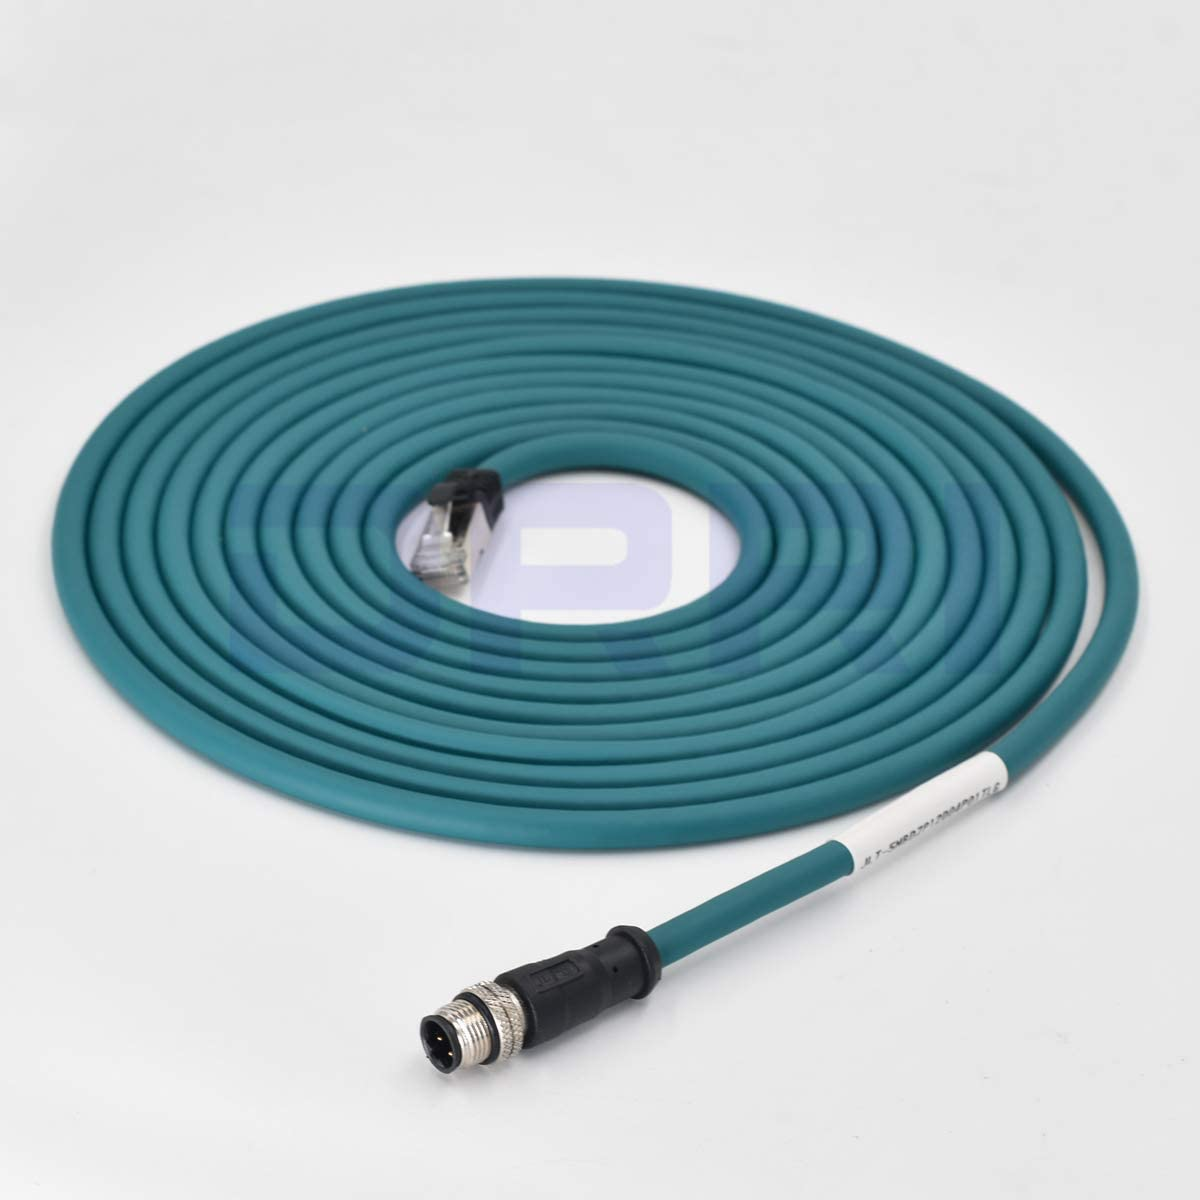 3M DRRI M12 4pin D-Code Male to RJ45 Waterproof Ethernet Shielded Cable for Industrial Ethernet Applications